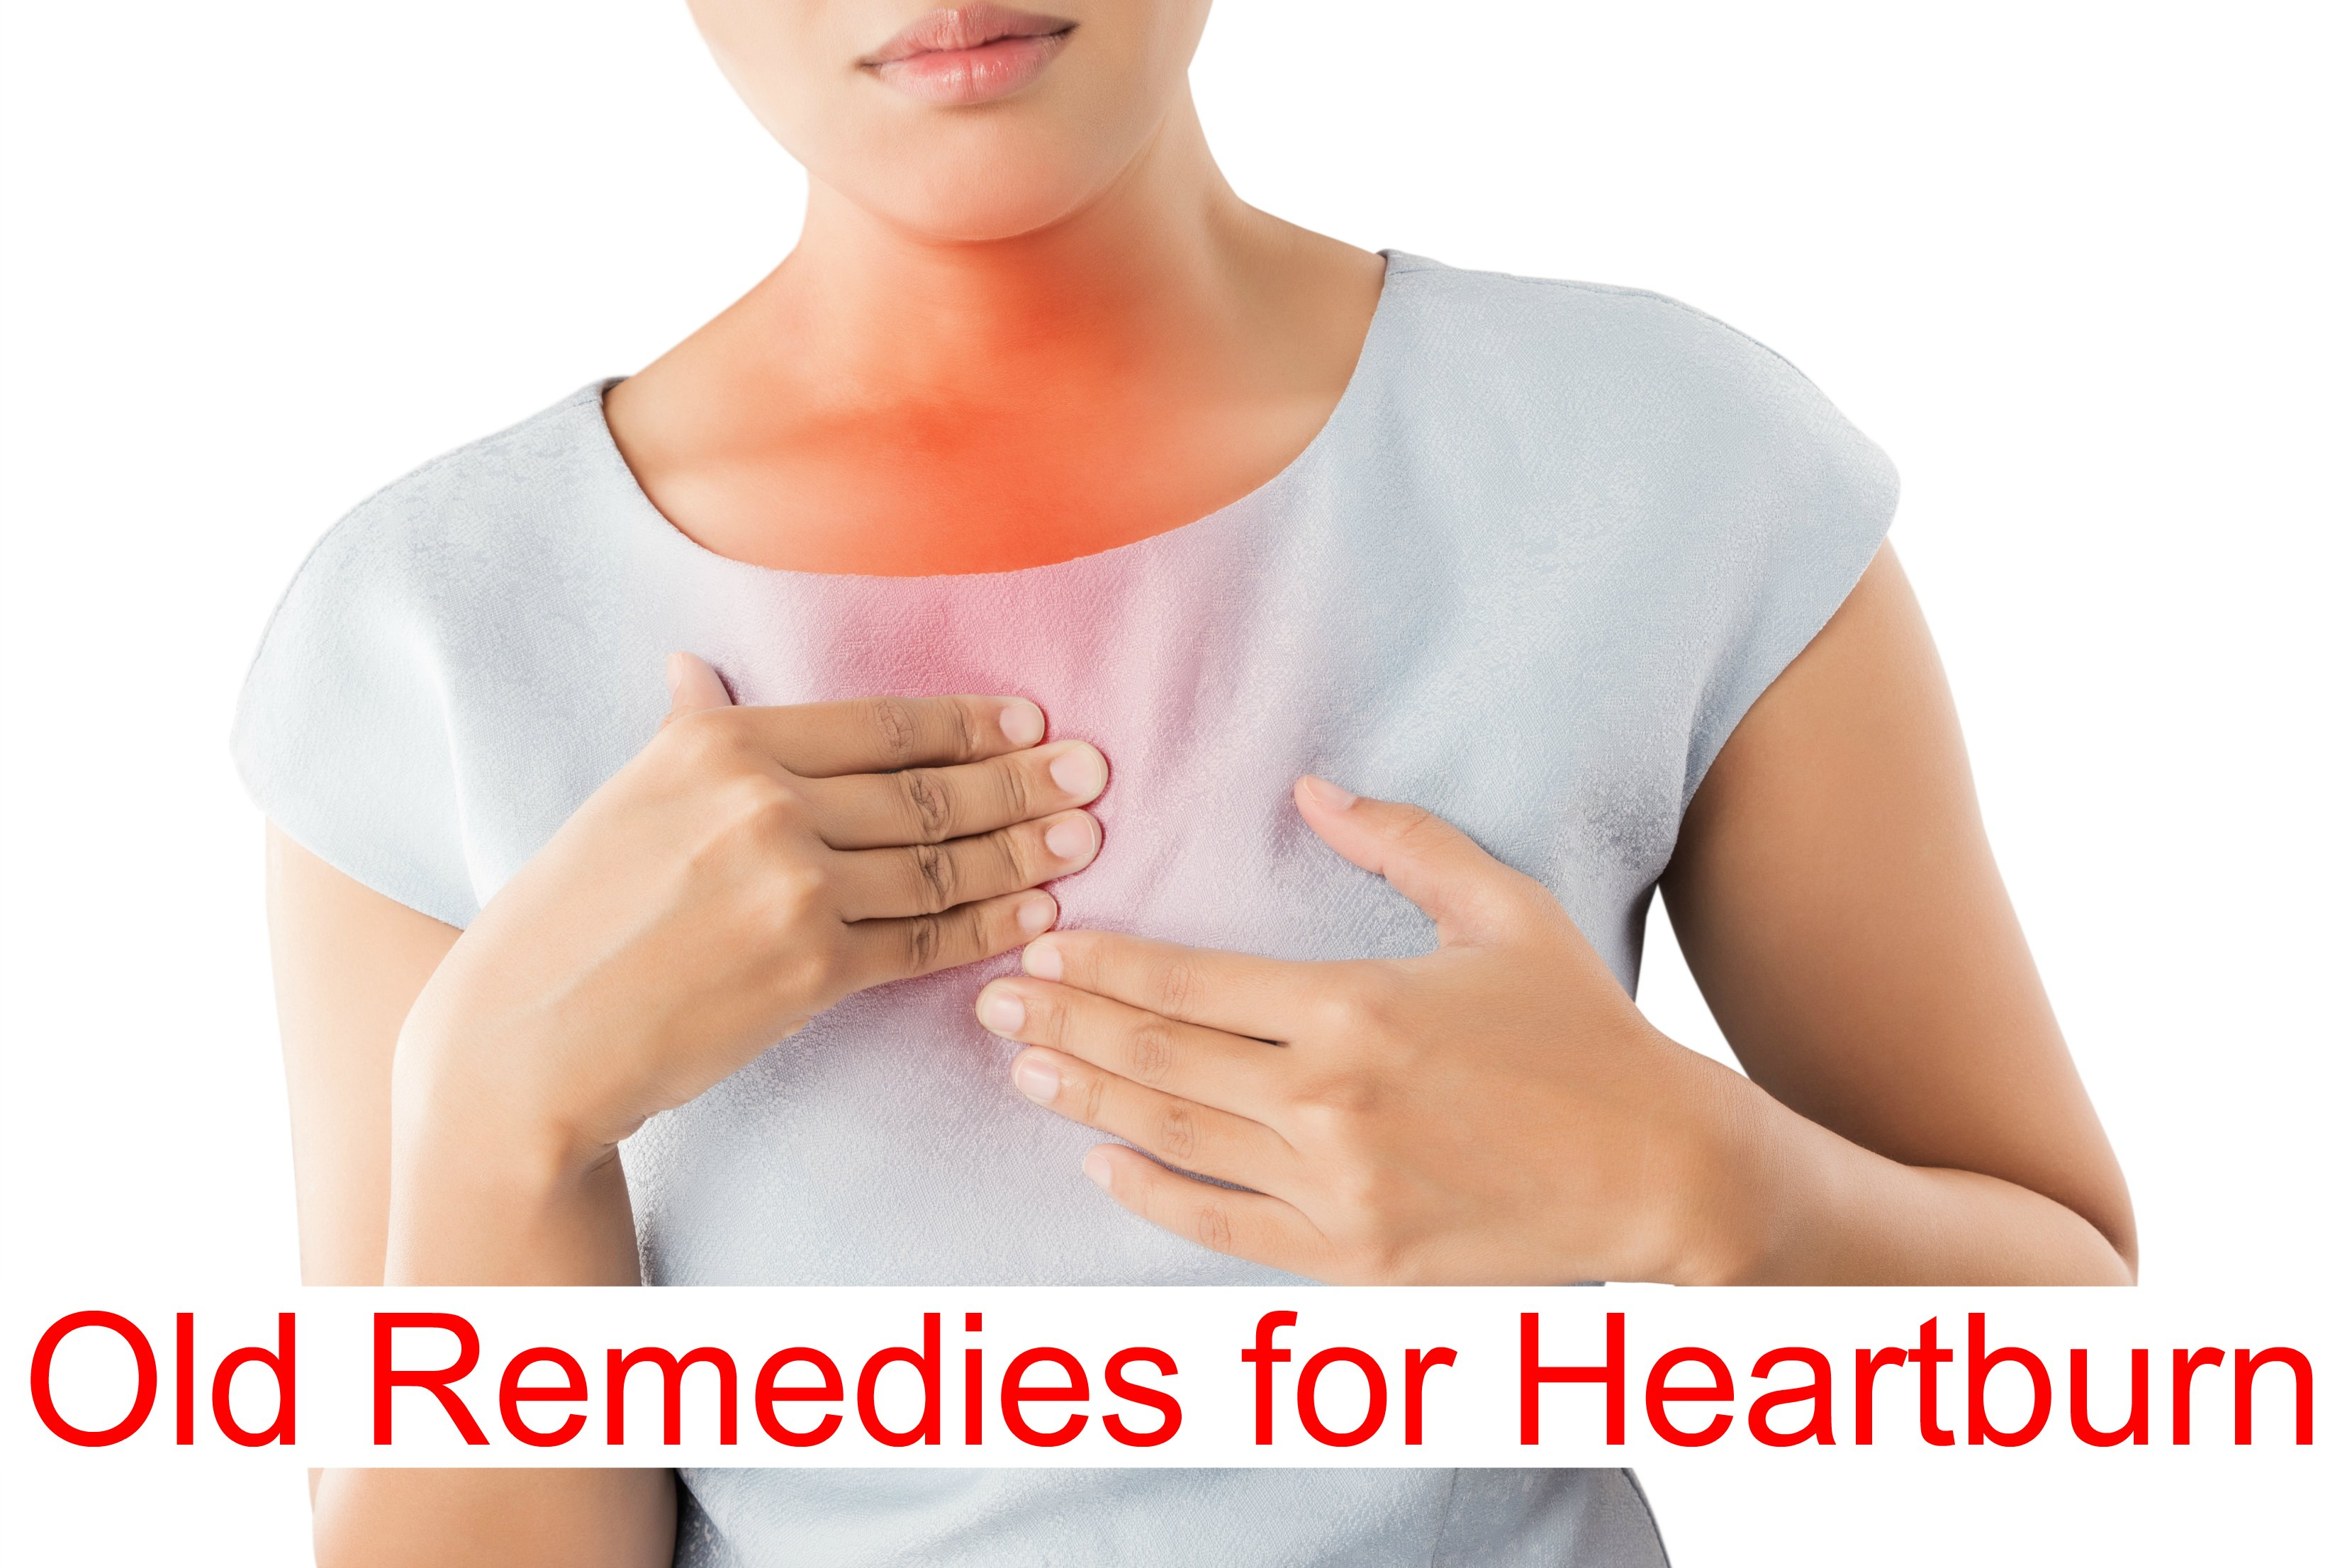 Old Remedies Heartburn